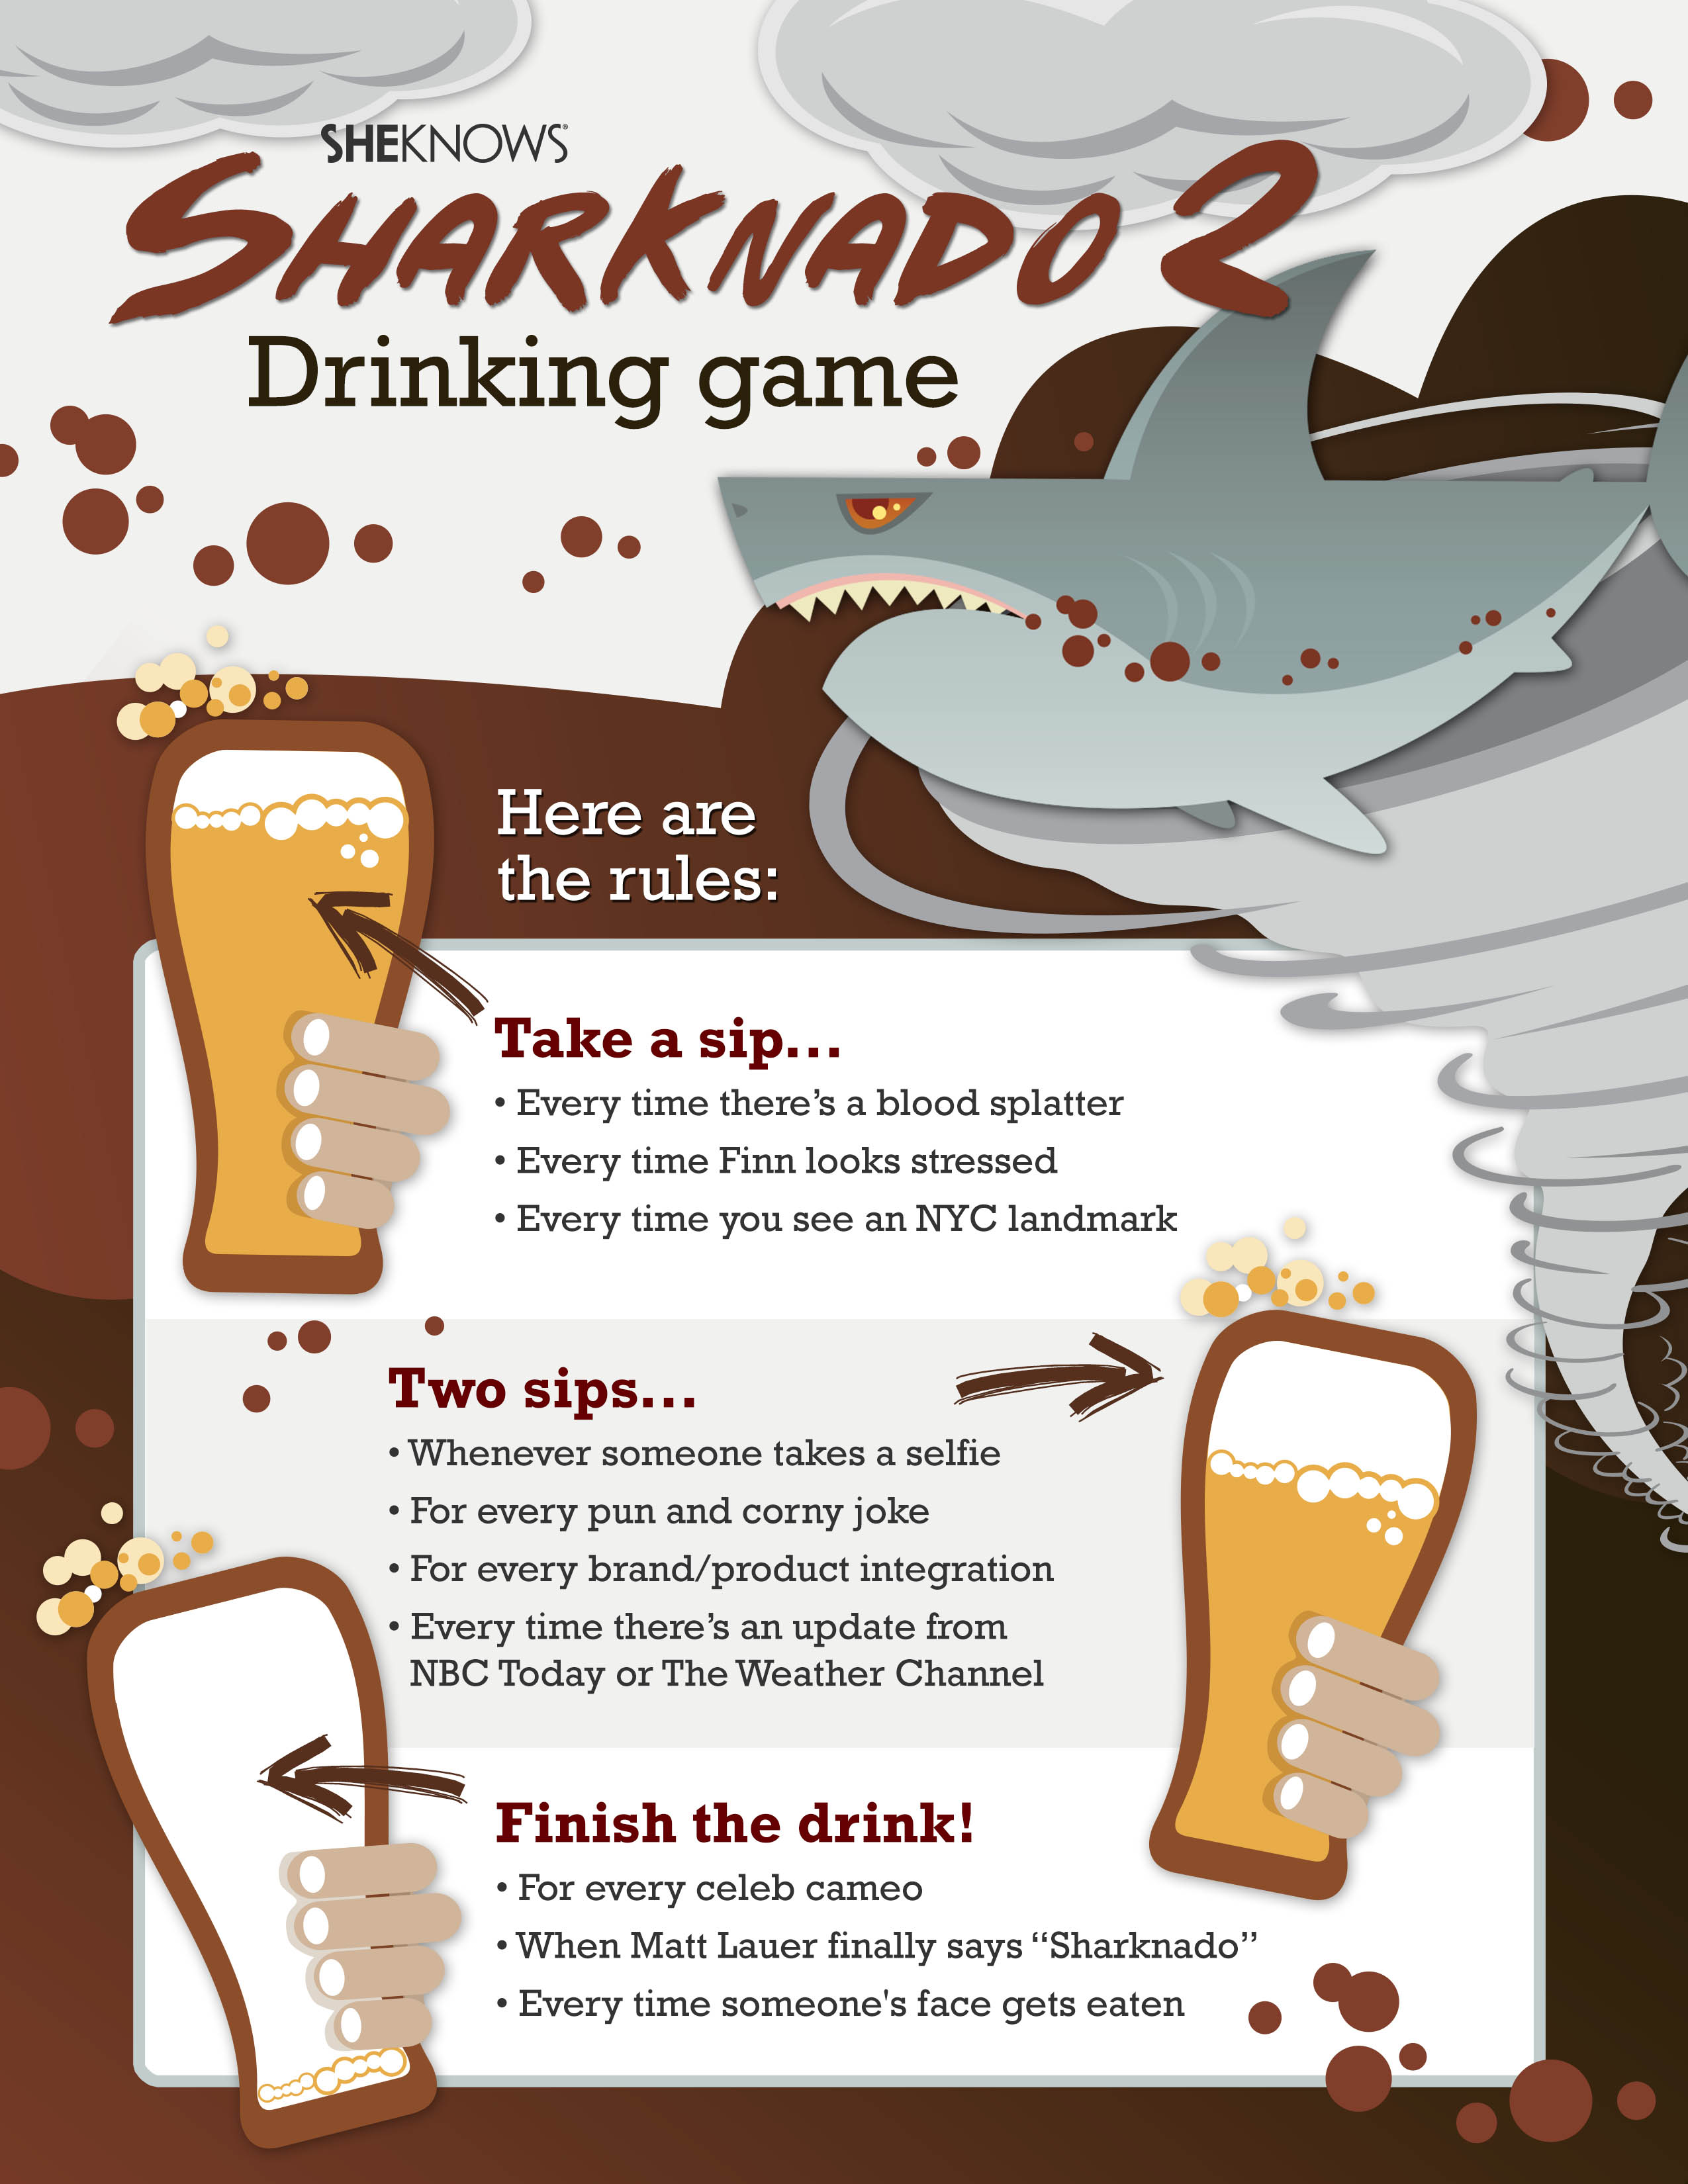 Our Sharknado 2 drinking game will take a chomp off your liver